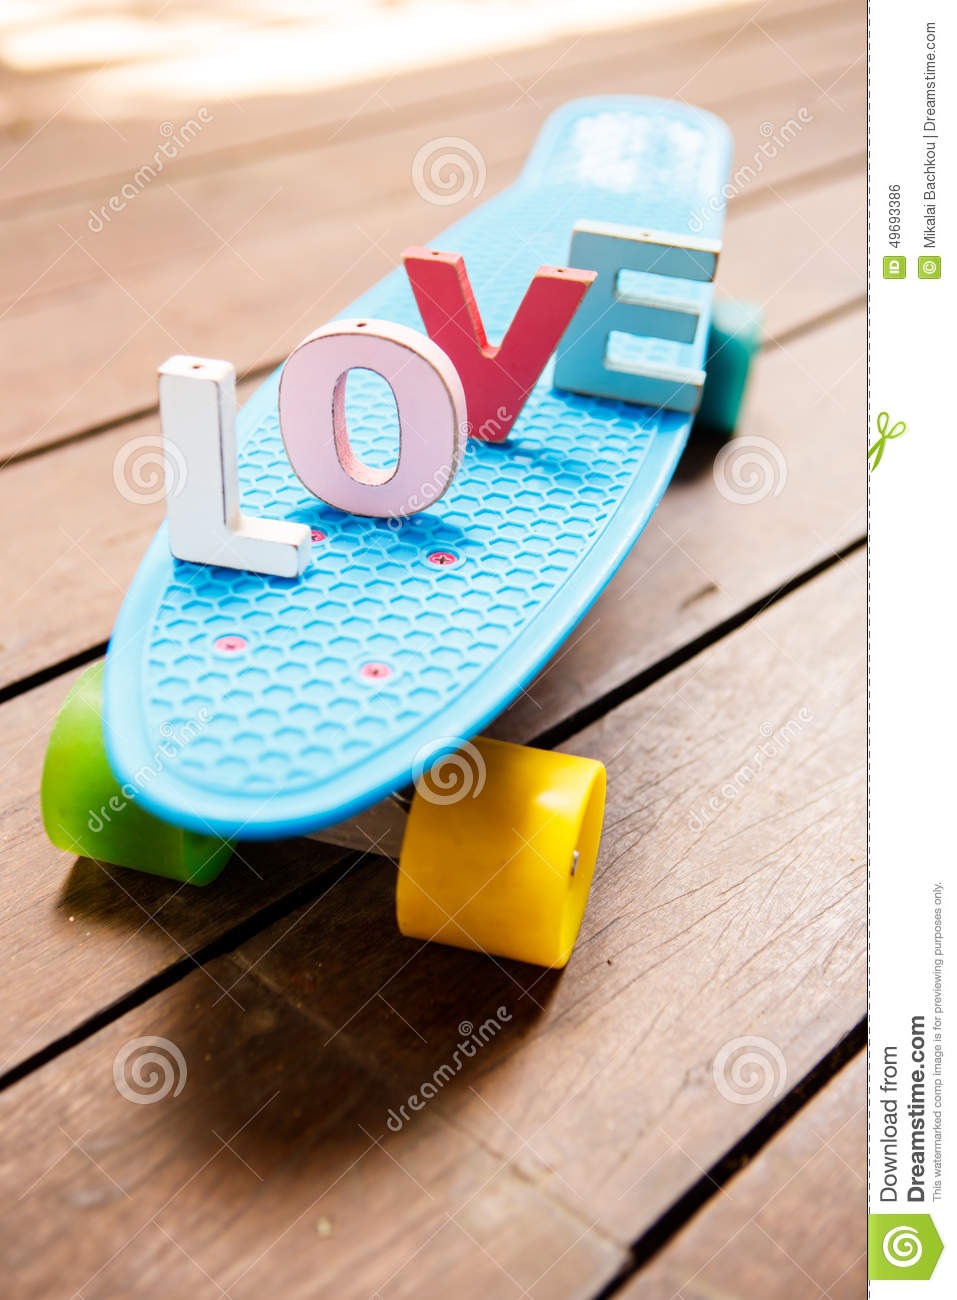 Word Love On The Blue Penny Board Stock Photo Image Of Retro